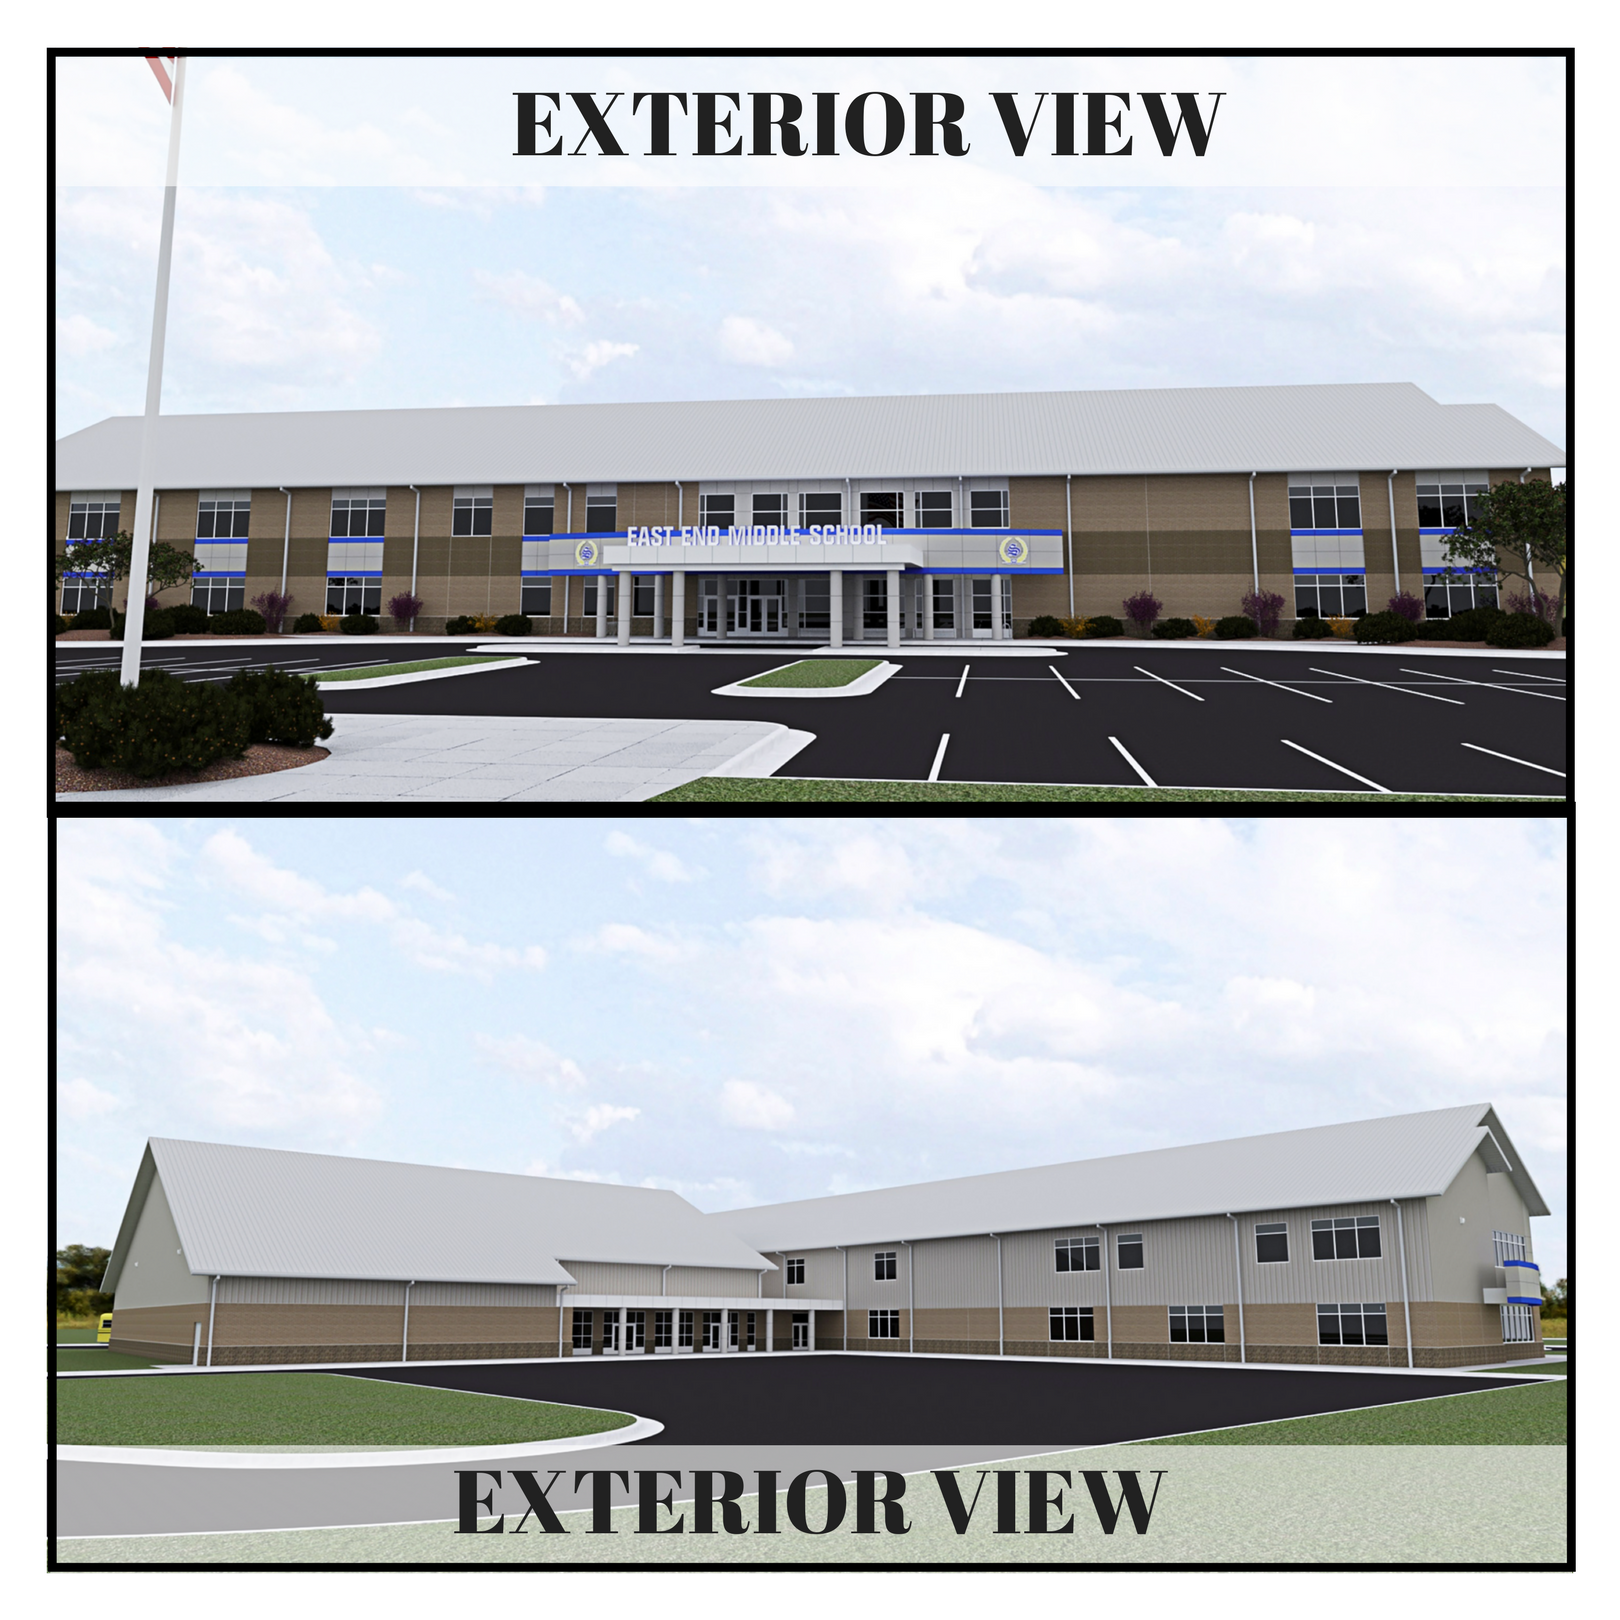 Exterior Renderings for the New East End Middle School